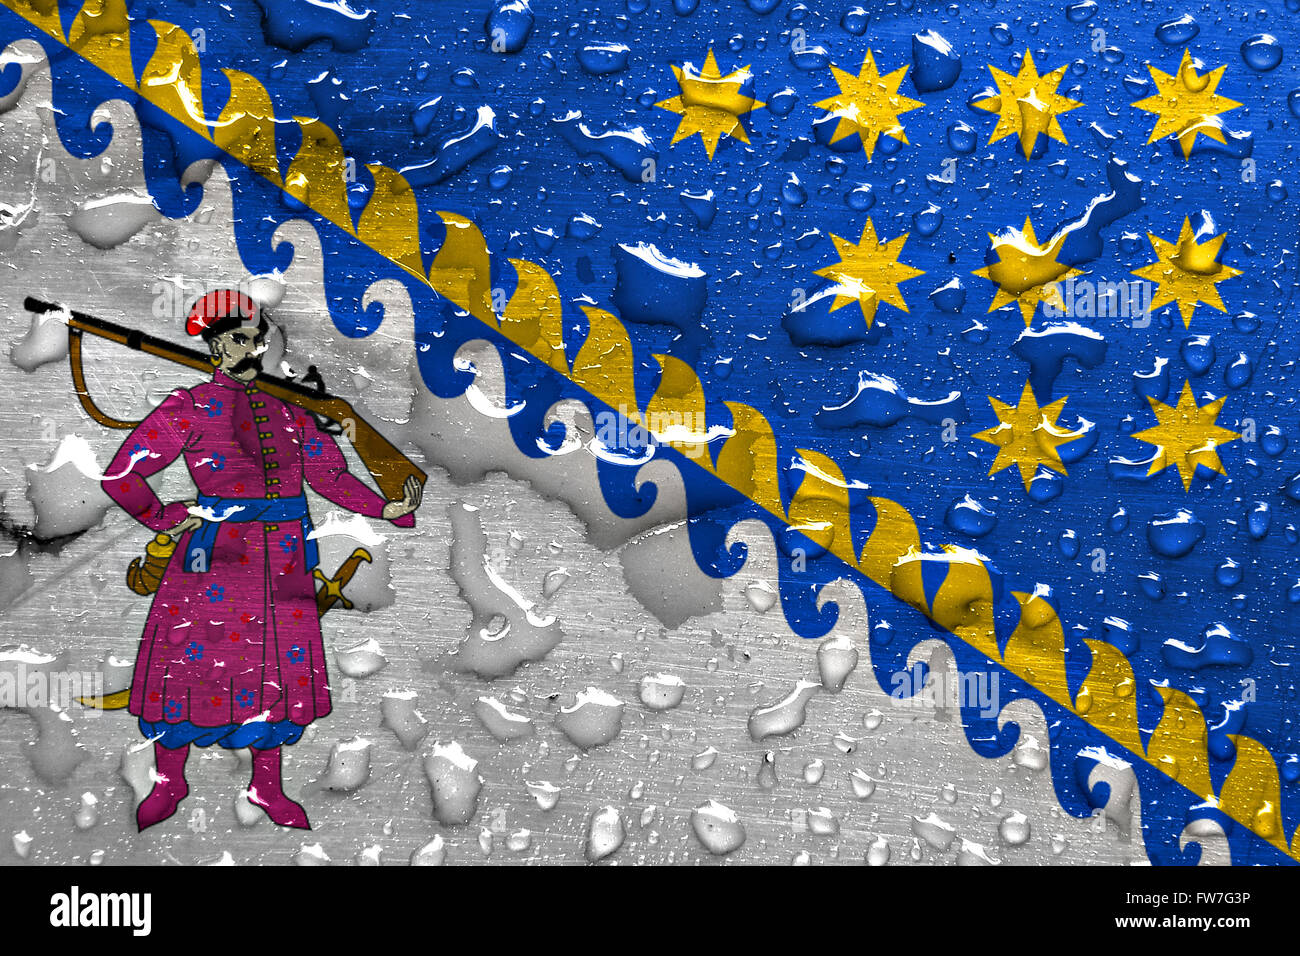 flag of Dnipropetrovsk Oblast with rain drops - Stock Image